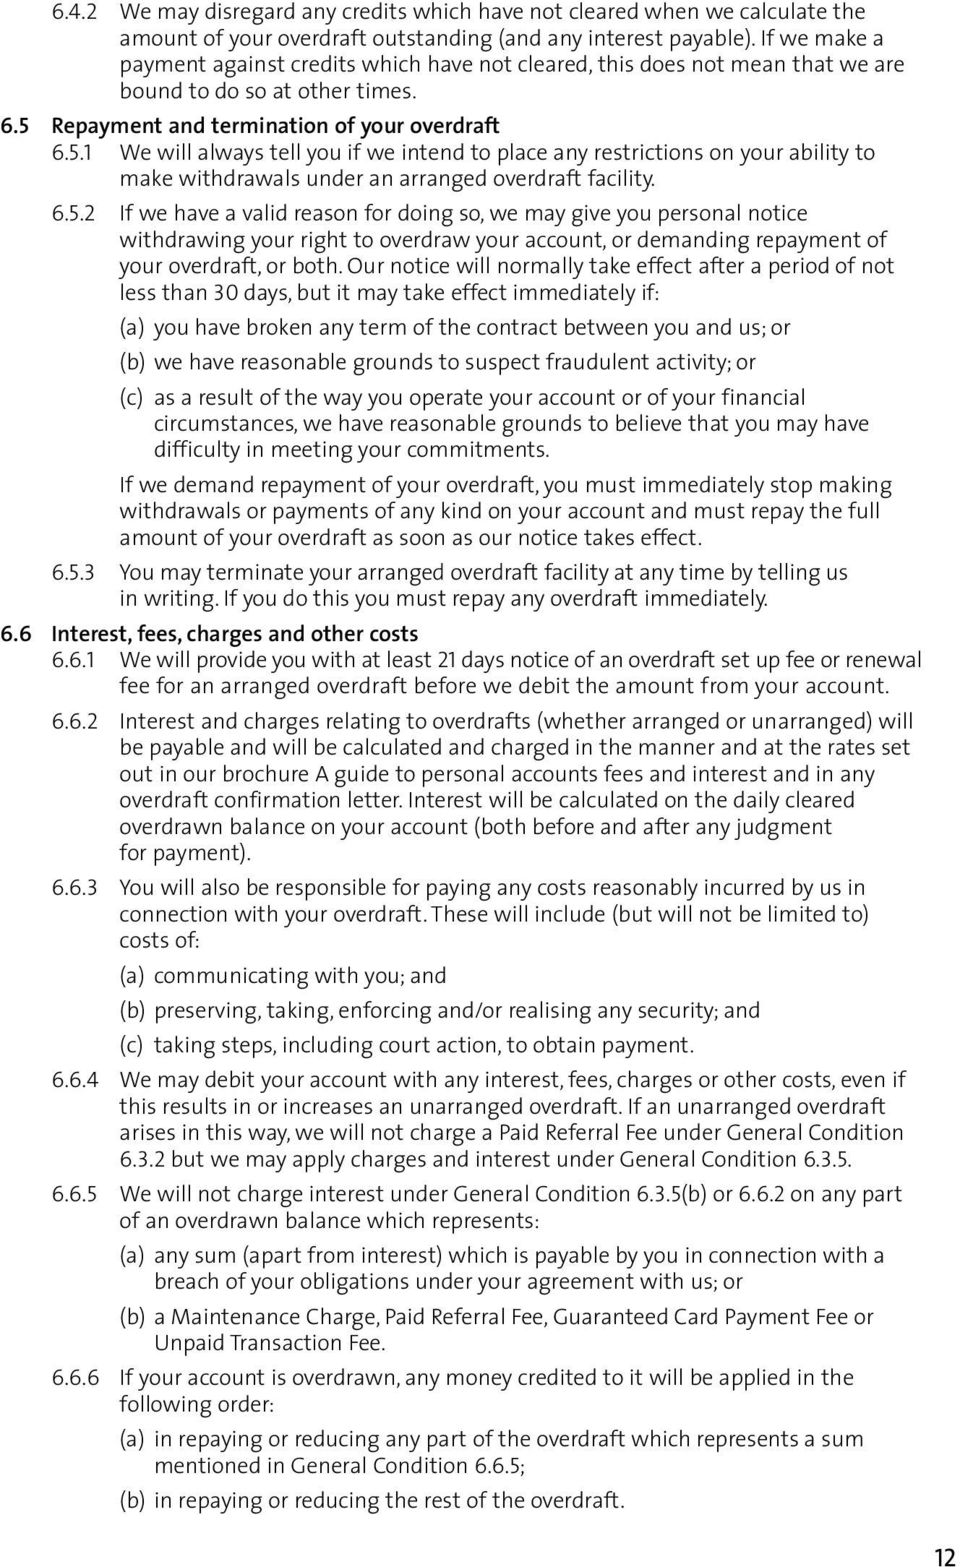 Repayment and termination of your overdraft 6.5.